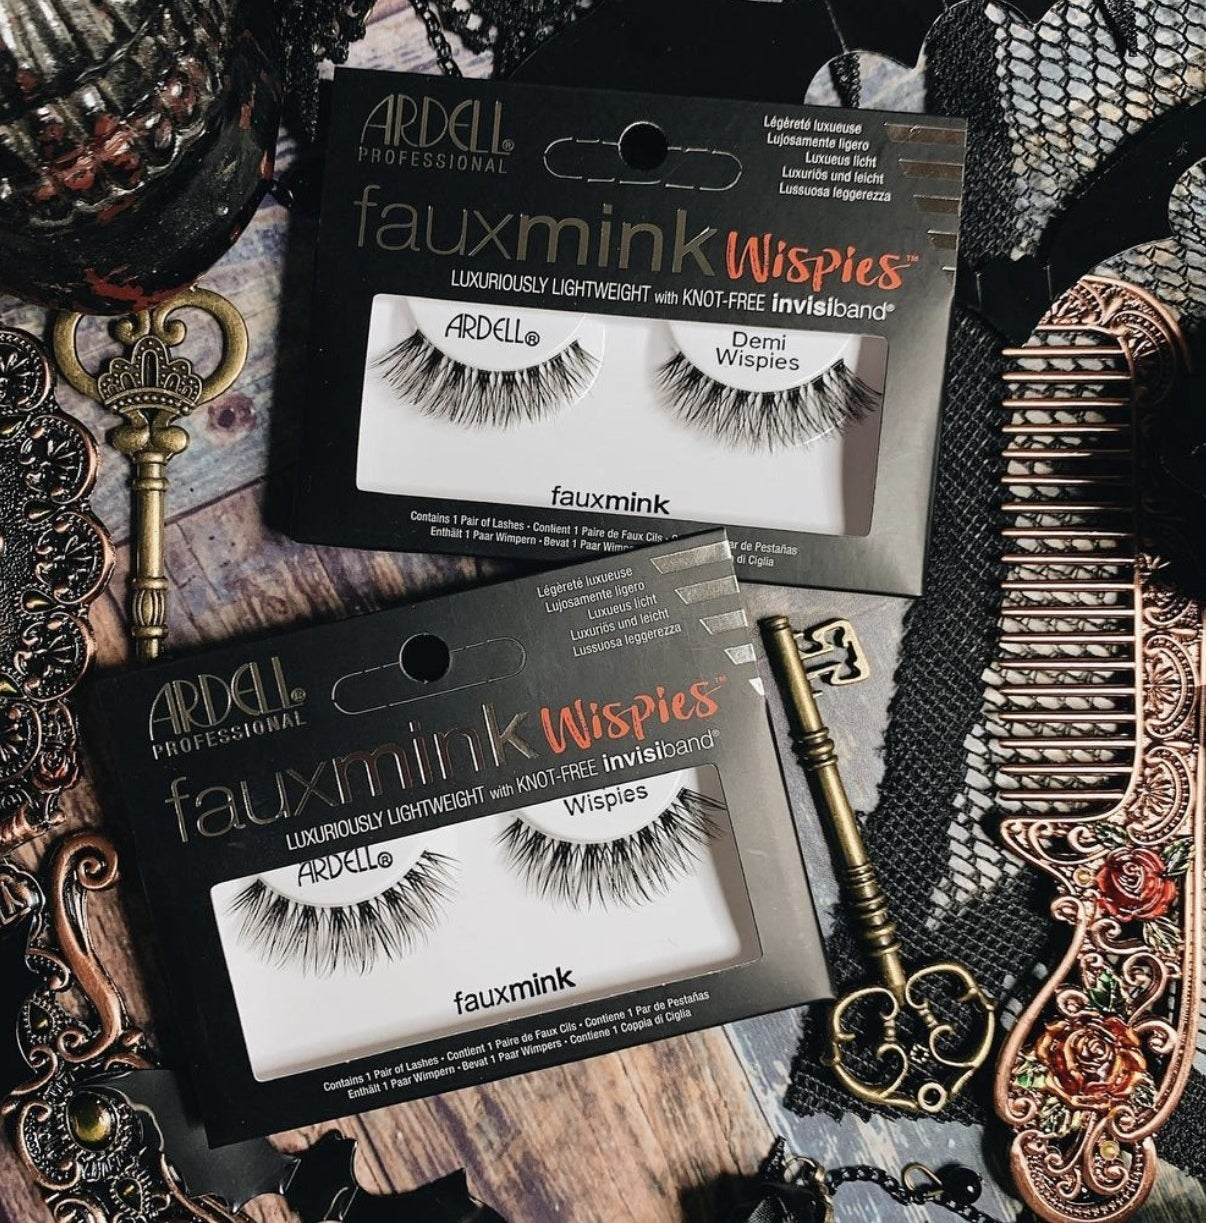 Ardell Professional fauxmink wispies and demi wispies